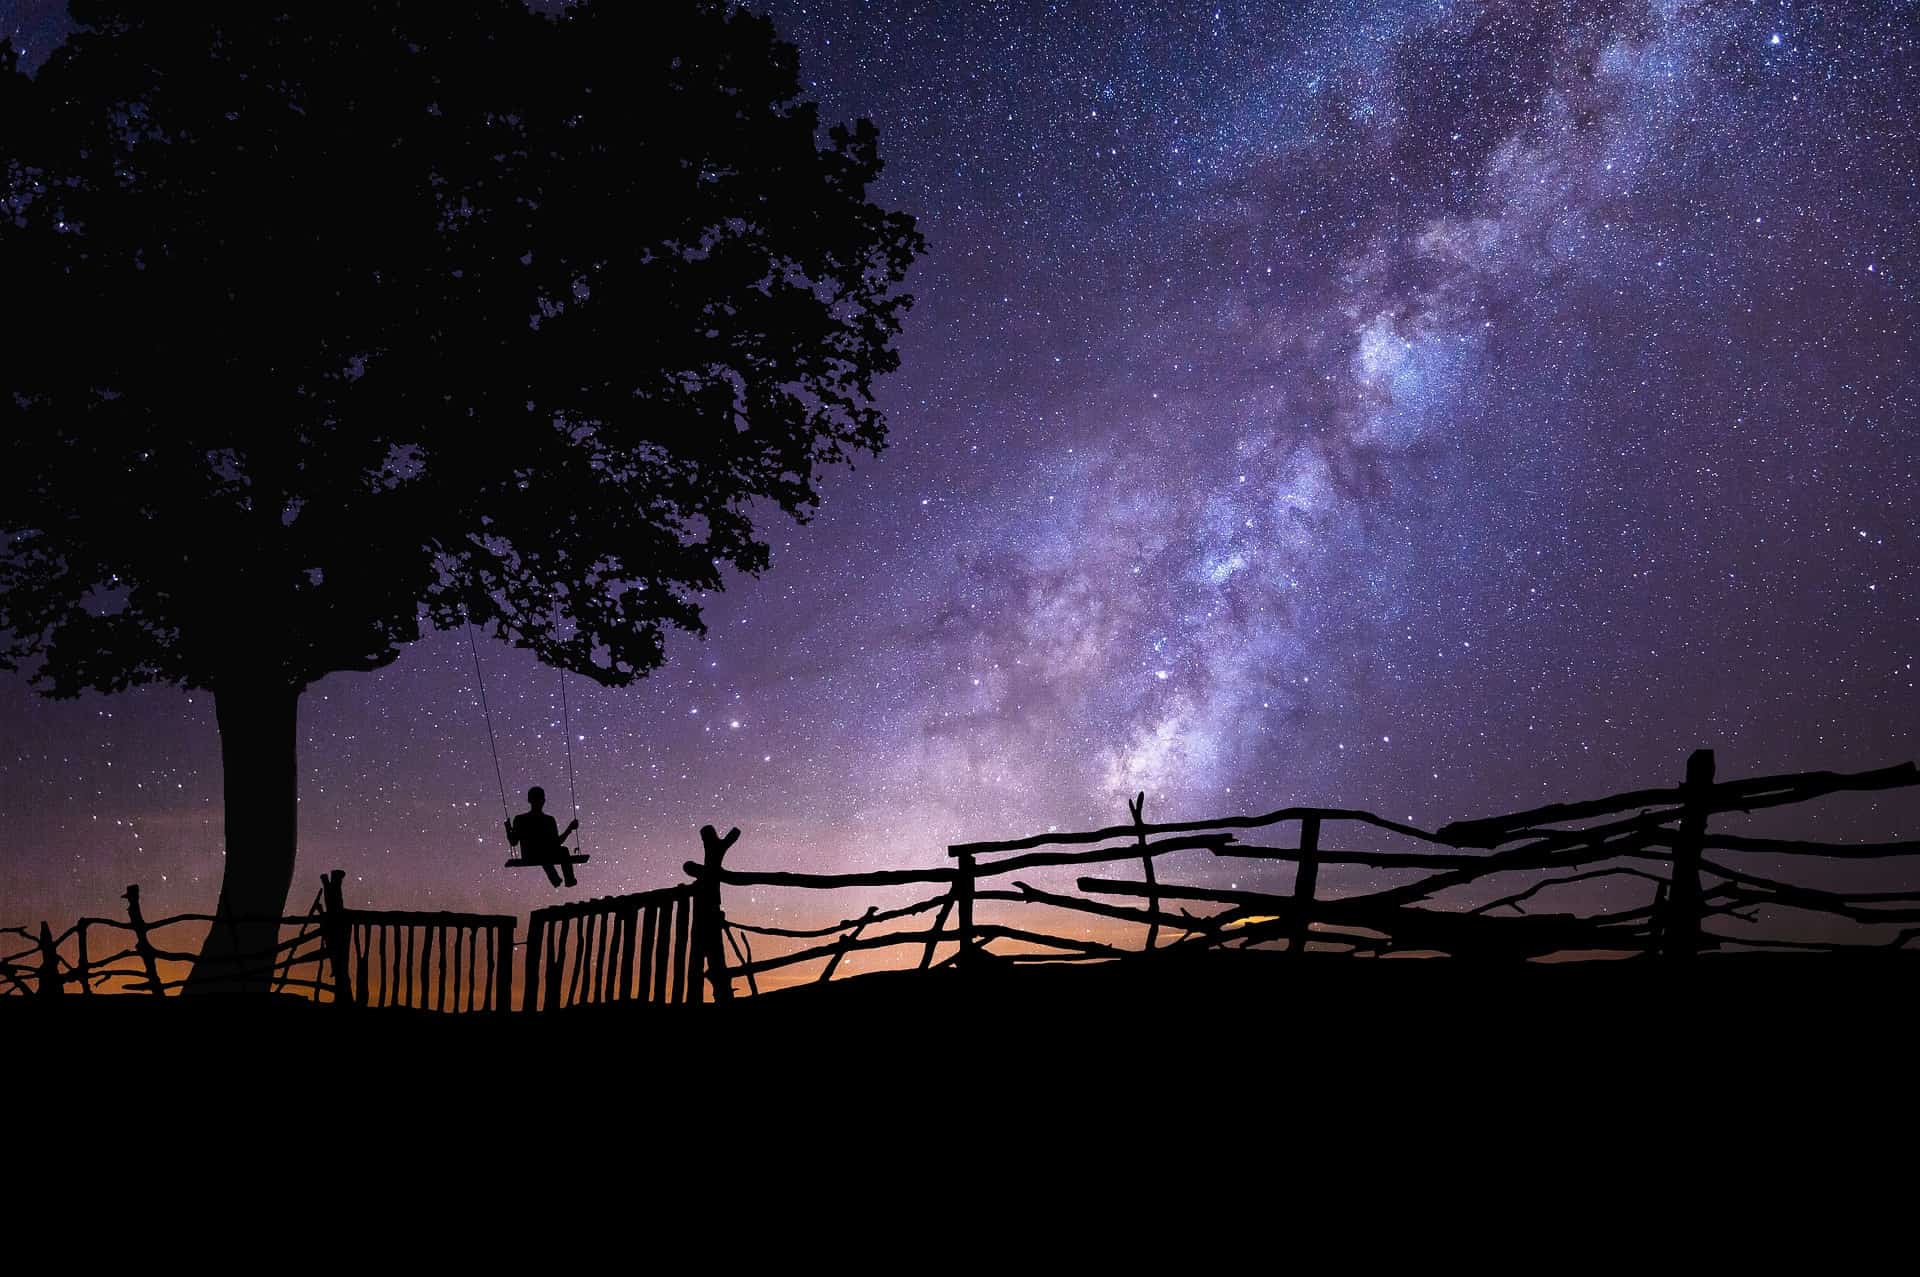 Night sky as a symbol of the intersection of science and spirituality